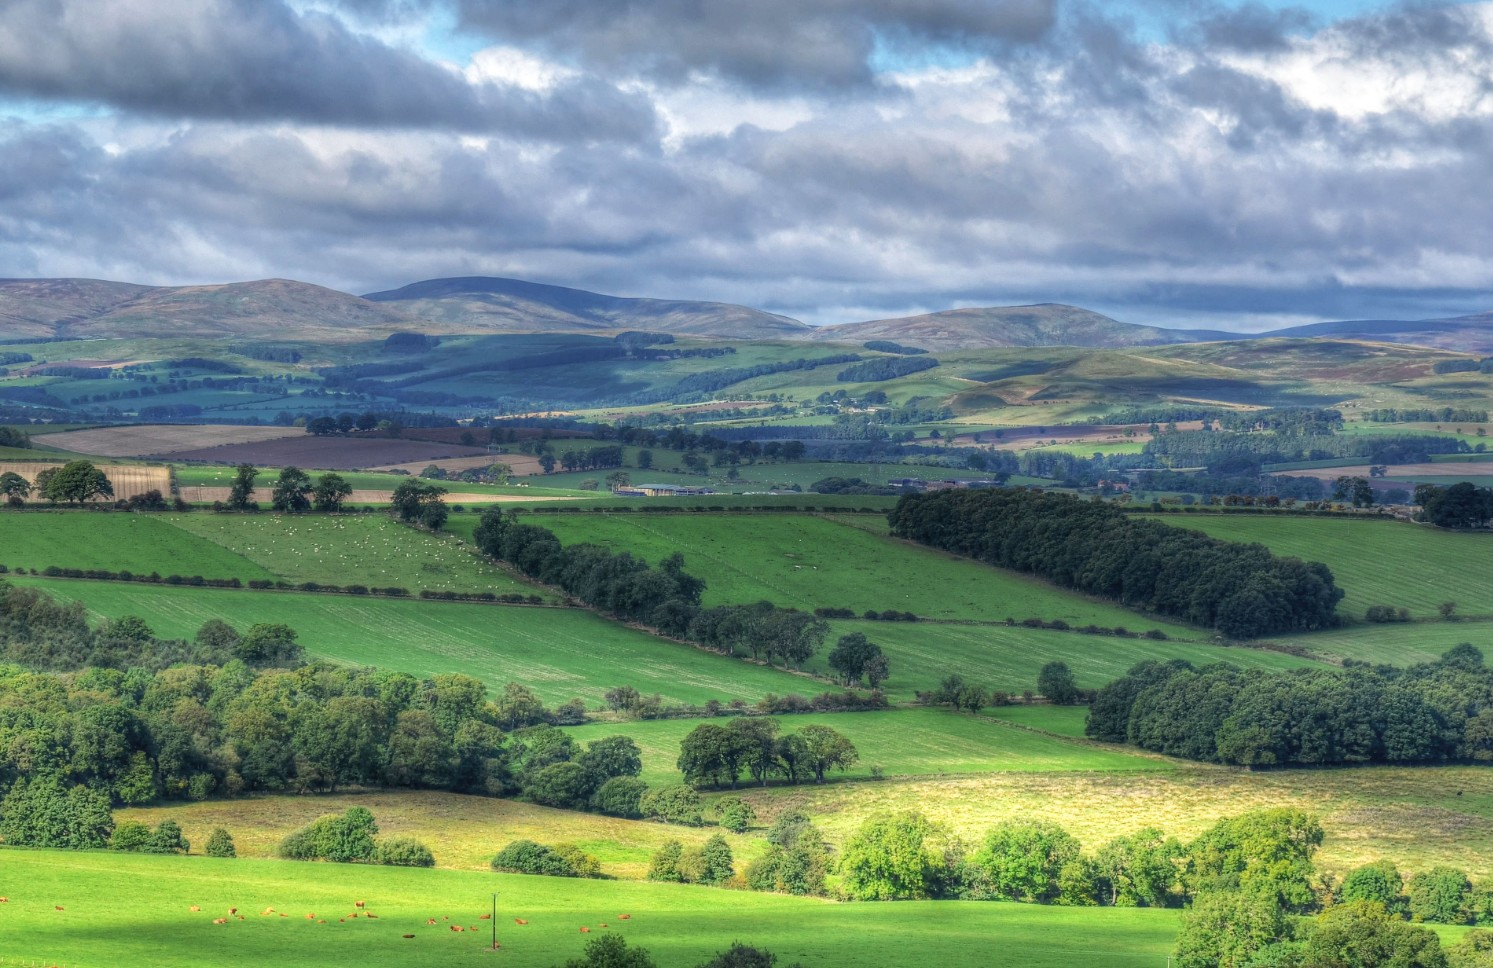 View of Cheviot hills from new house development Lowick Northumberland called Village Meadows